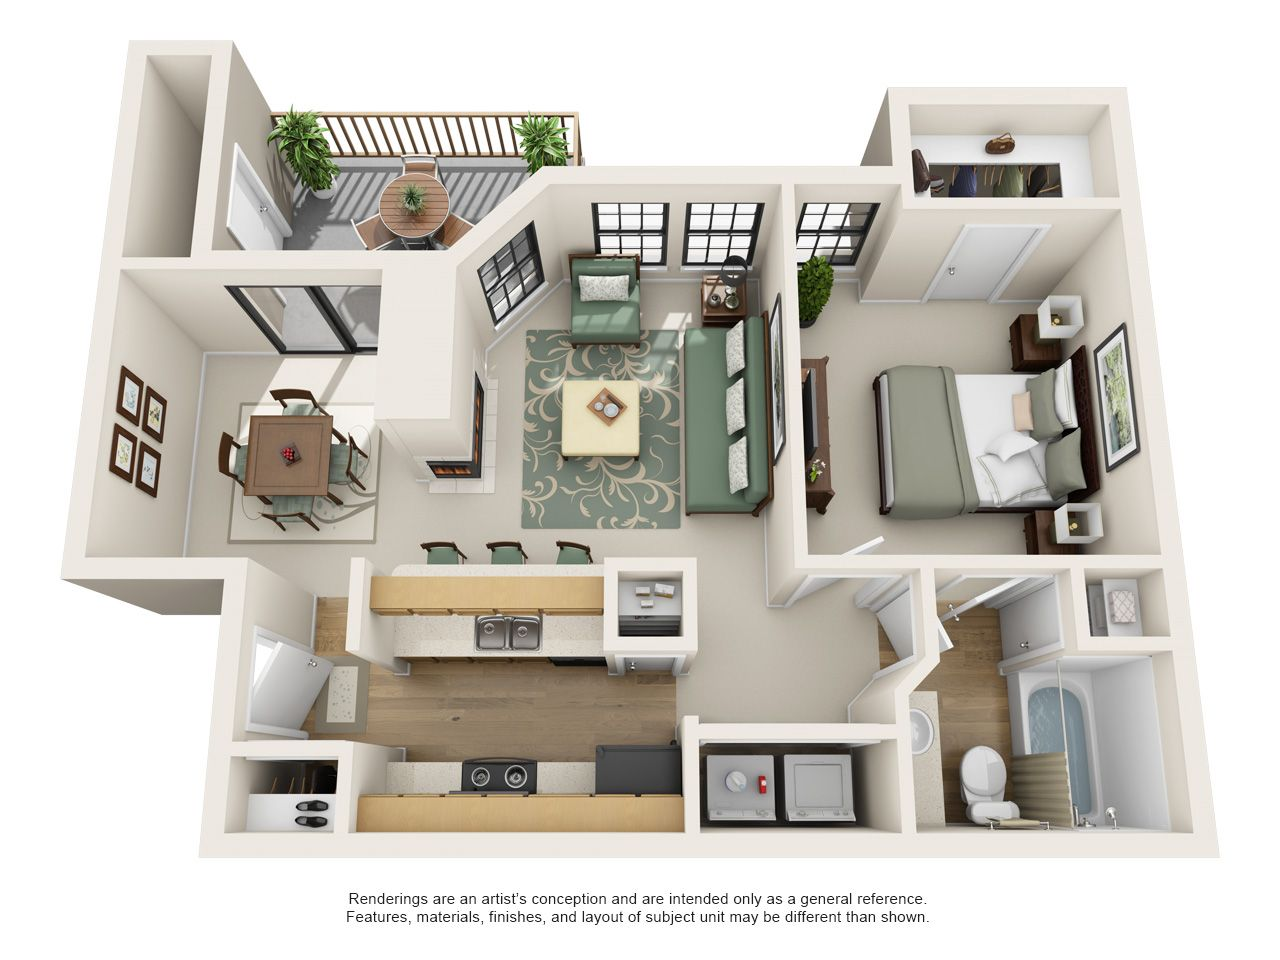 1 And 2 Bedroom Apartments In Carrollton Tx Layouts Steadfast Apartment Renting Rental Texas Dal Apartment Floor Plans Sims House Plans Sims House